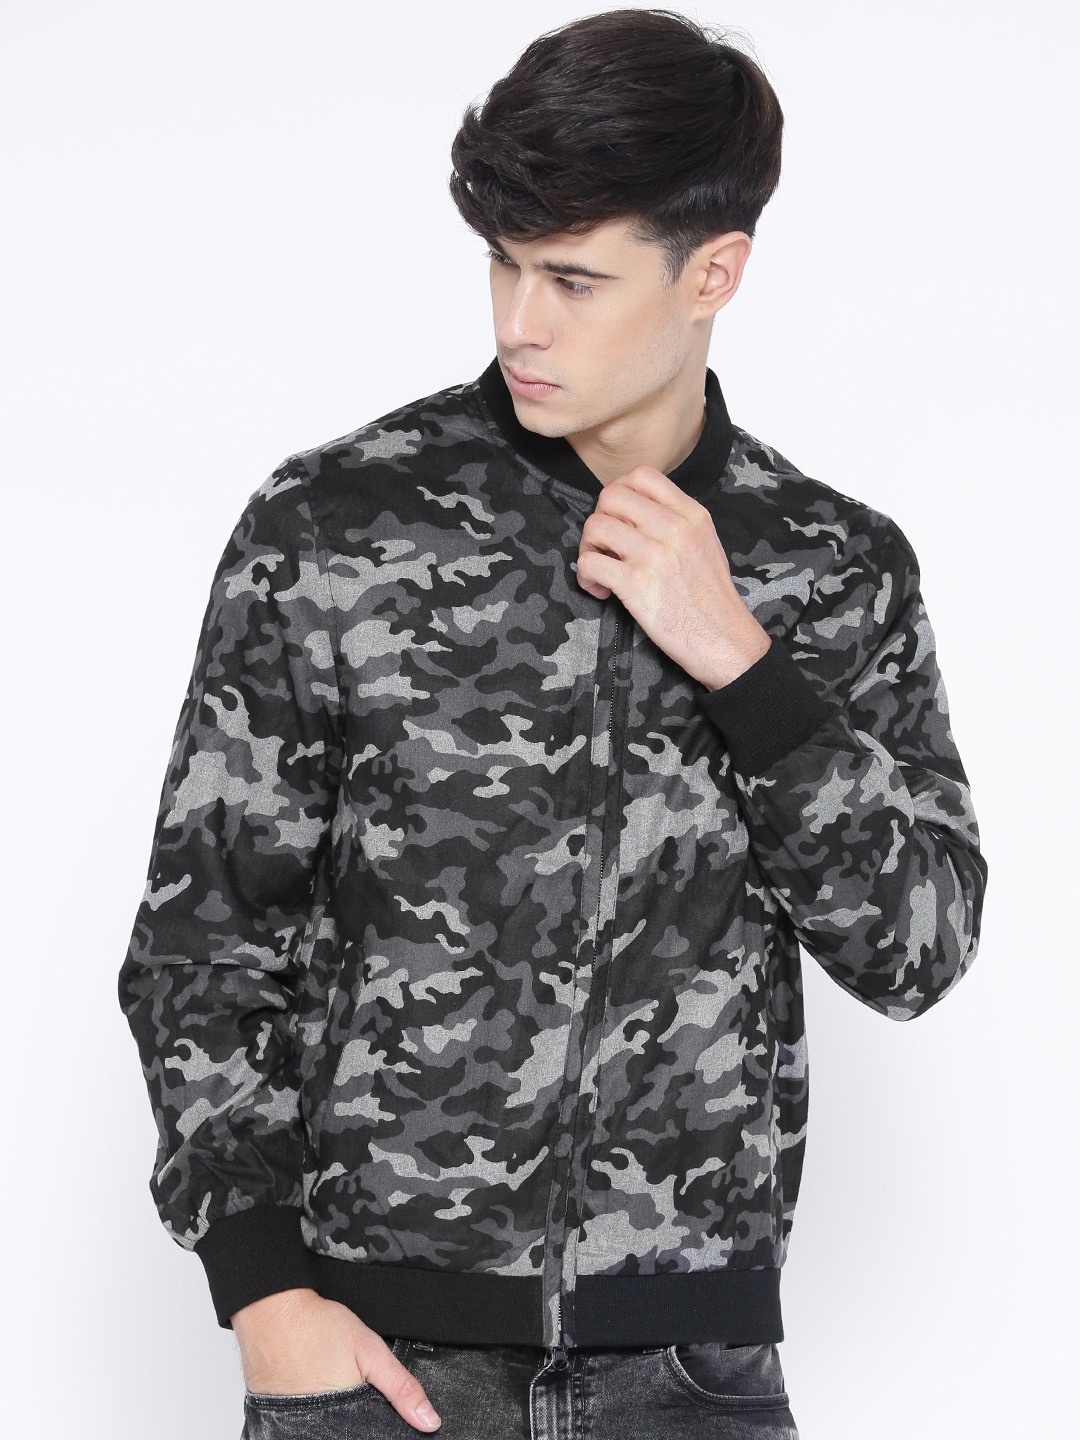 3352ccdae751b5 Camouflage Jacket - Buy Trendy Camouflage Jackets Online